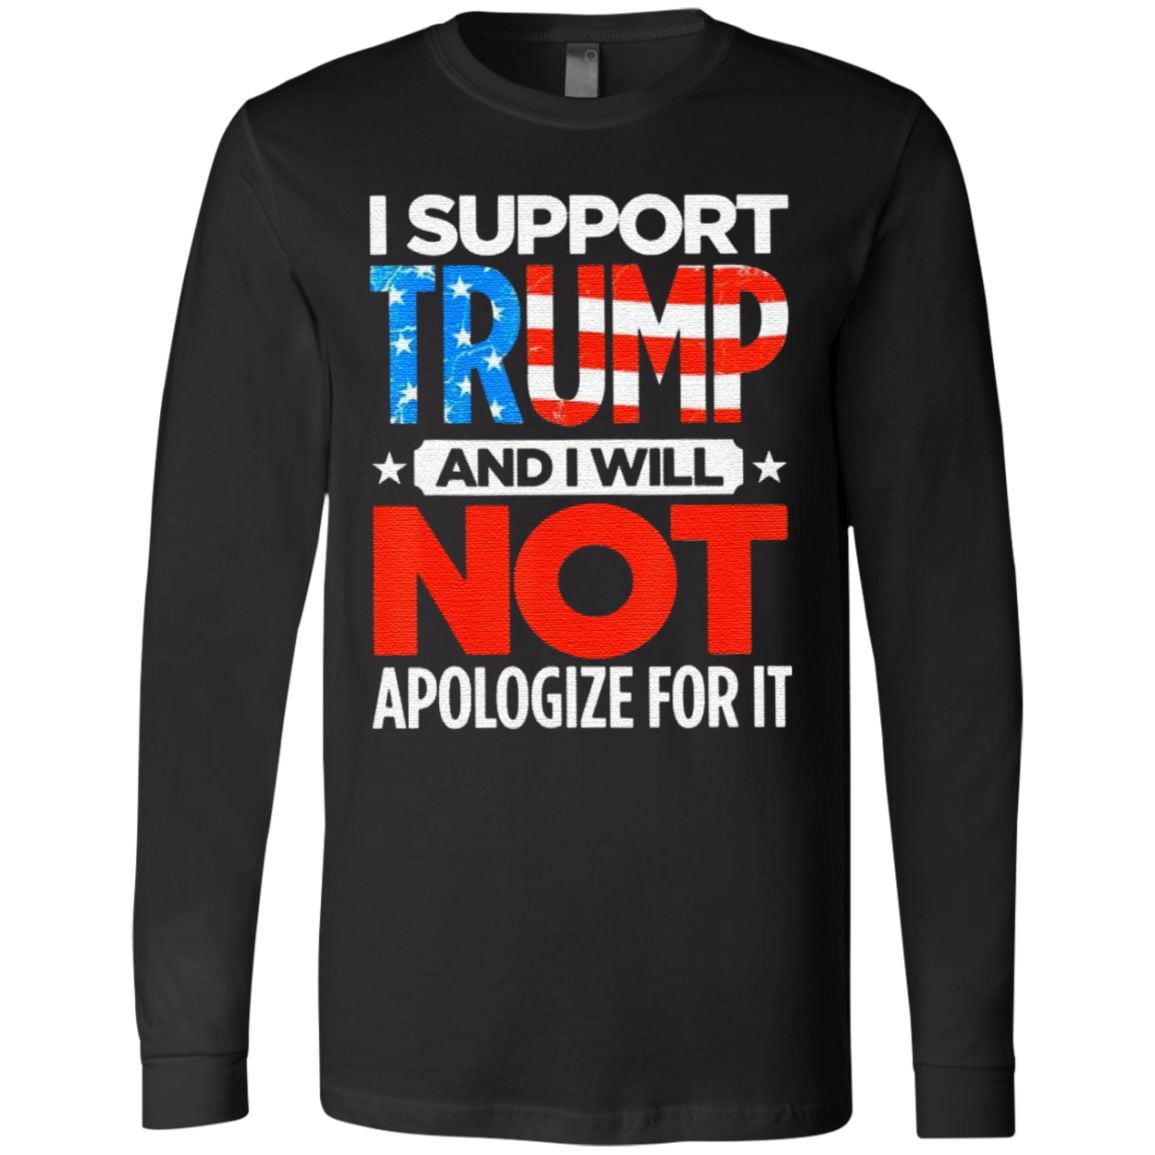 I Support Trump not Apologize for It T Shirt